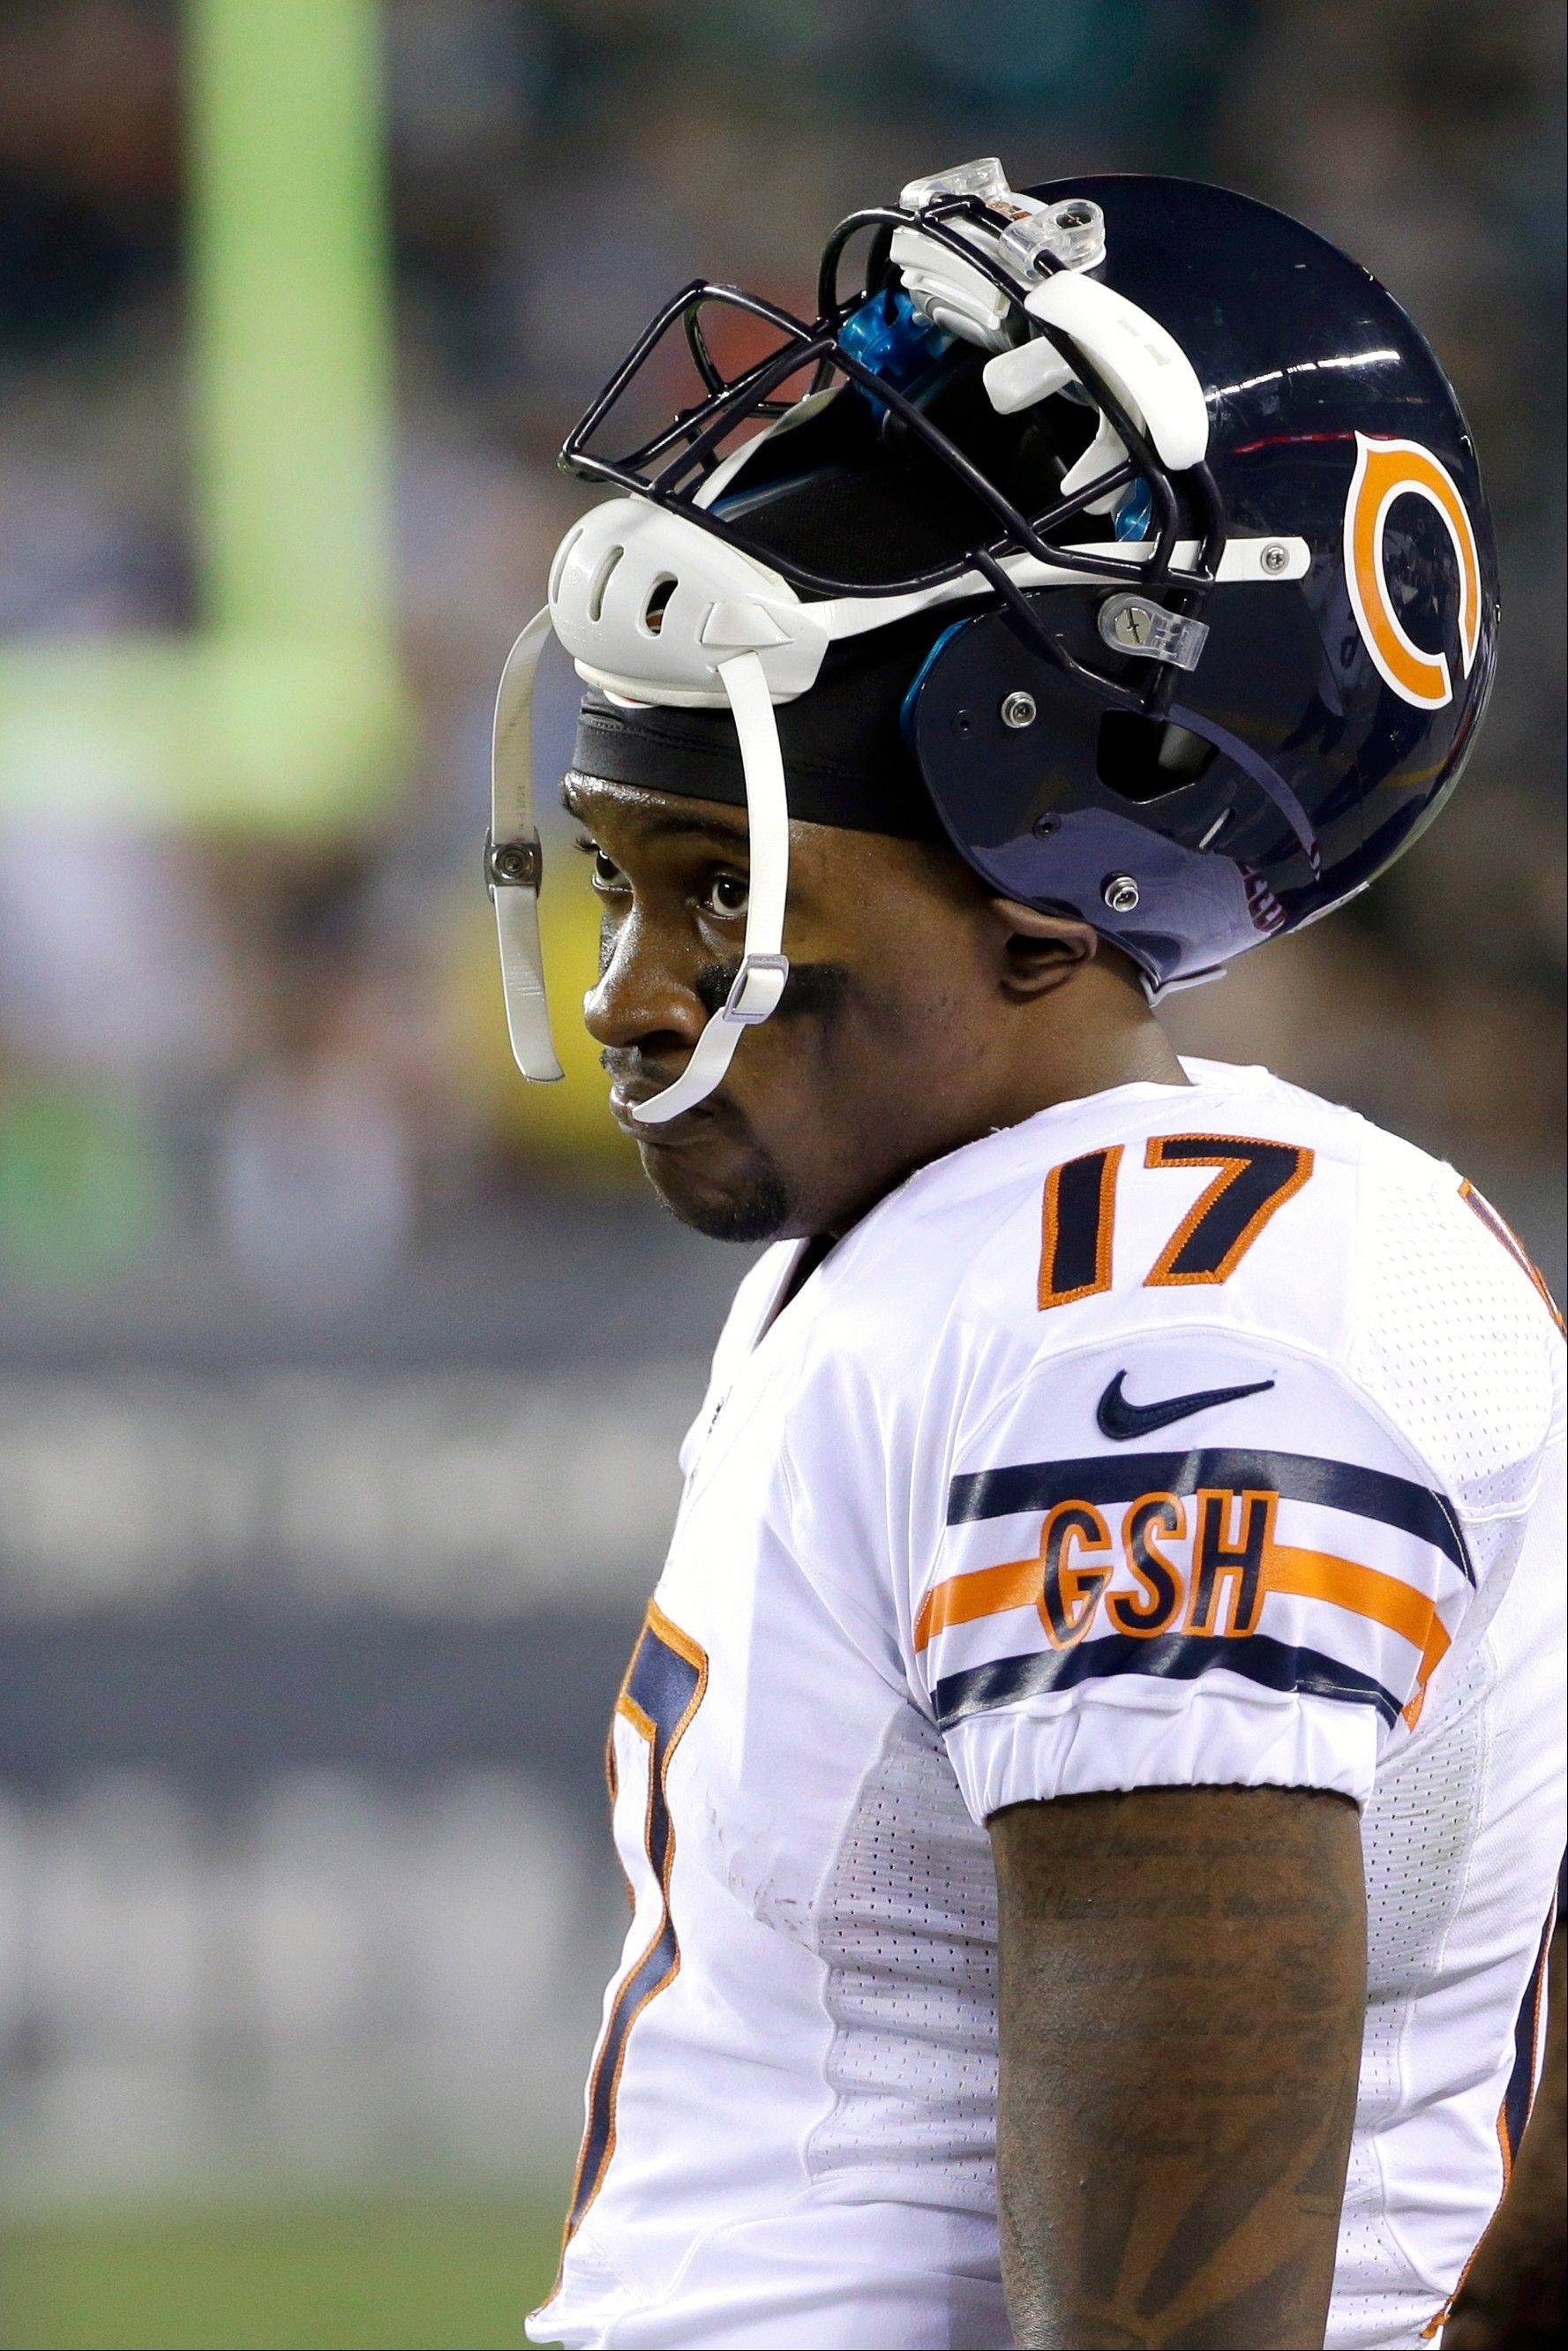 Bears receiver Alshon Jeffery watches from the sidelines during the second half of an NFL football game against the Philadelphia Eagles, Sunday, Dec. 22, 2013, in Philadelphia.